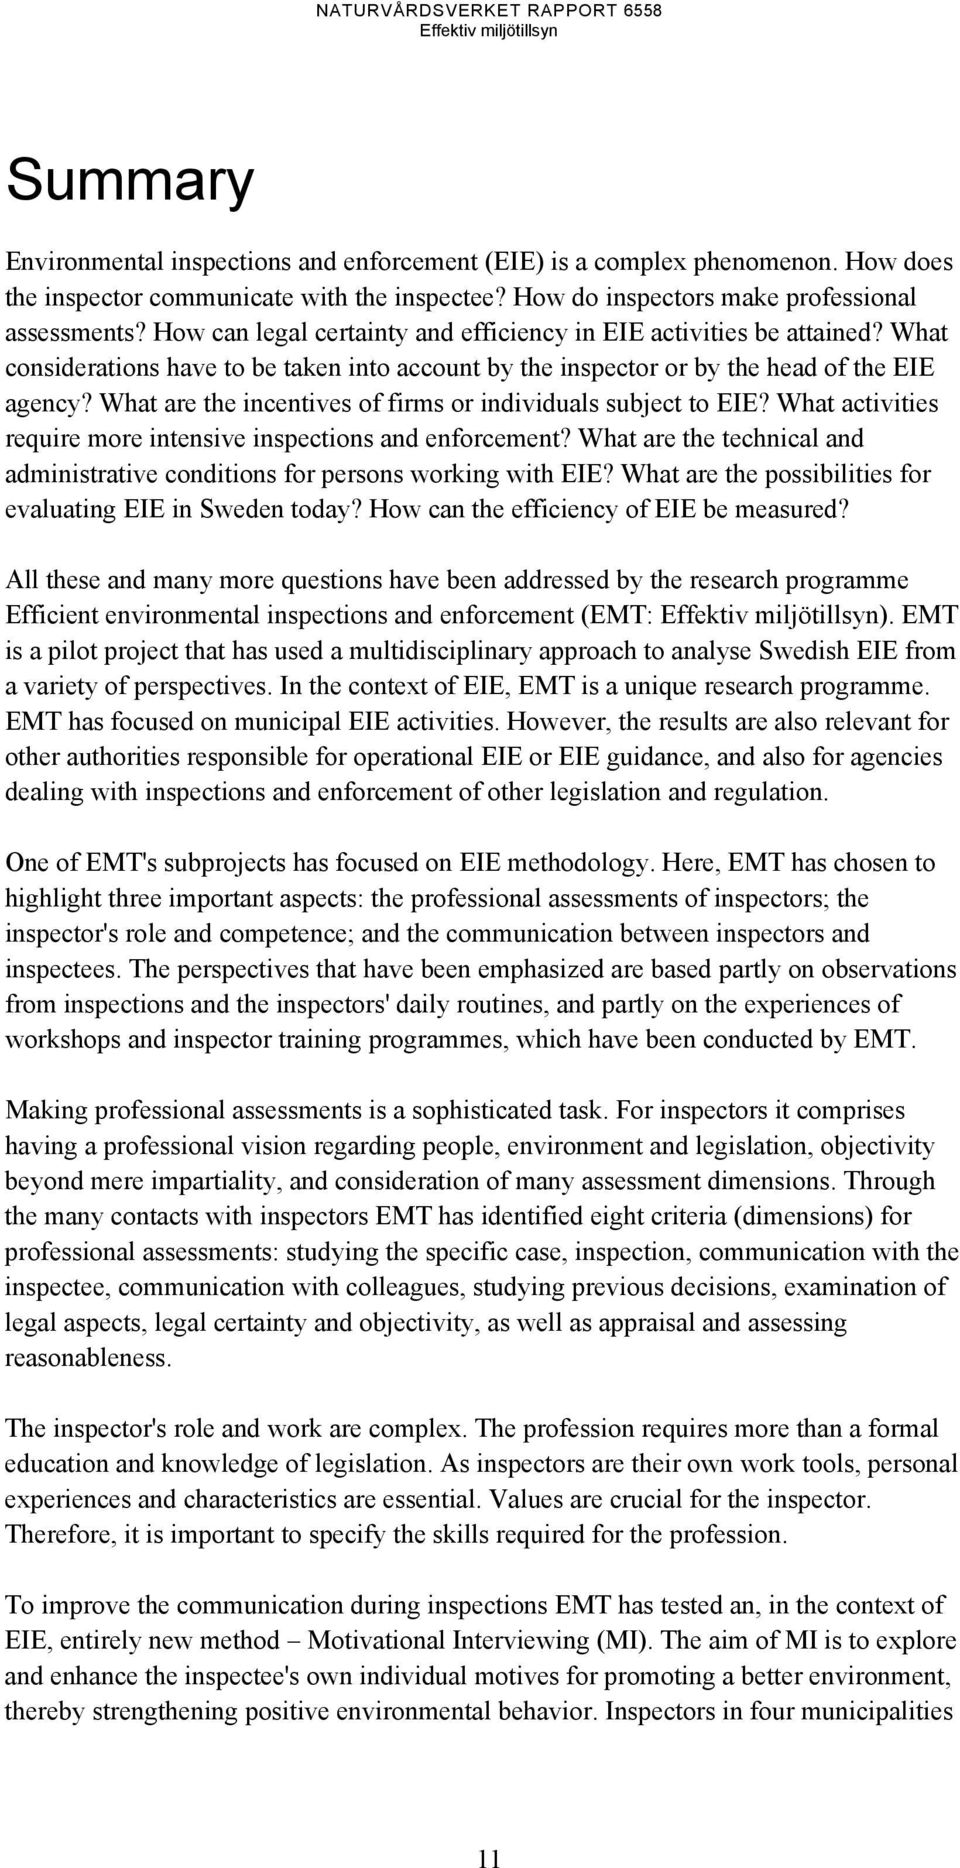 What are the incentives of firms or individuals subject to EIE? What activities require more intensive inspections and enforcement?